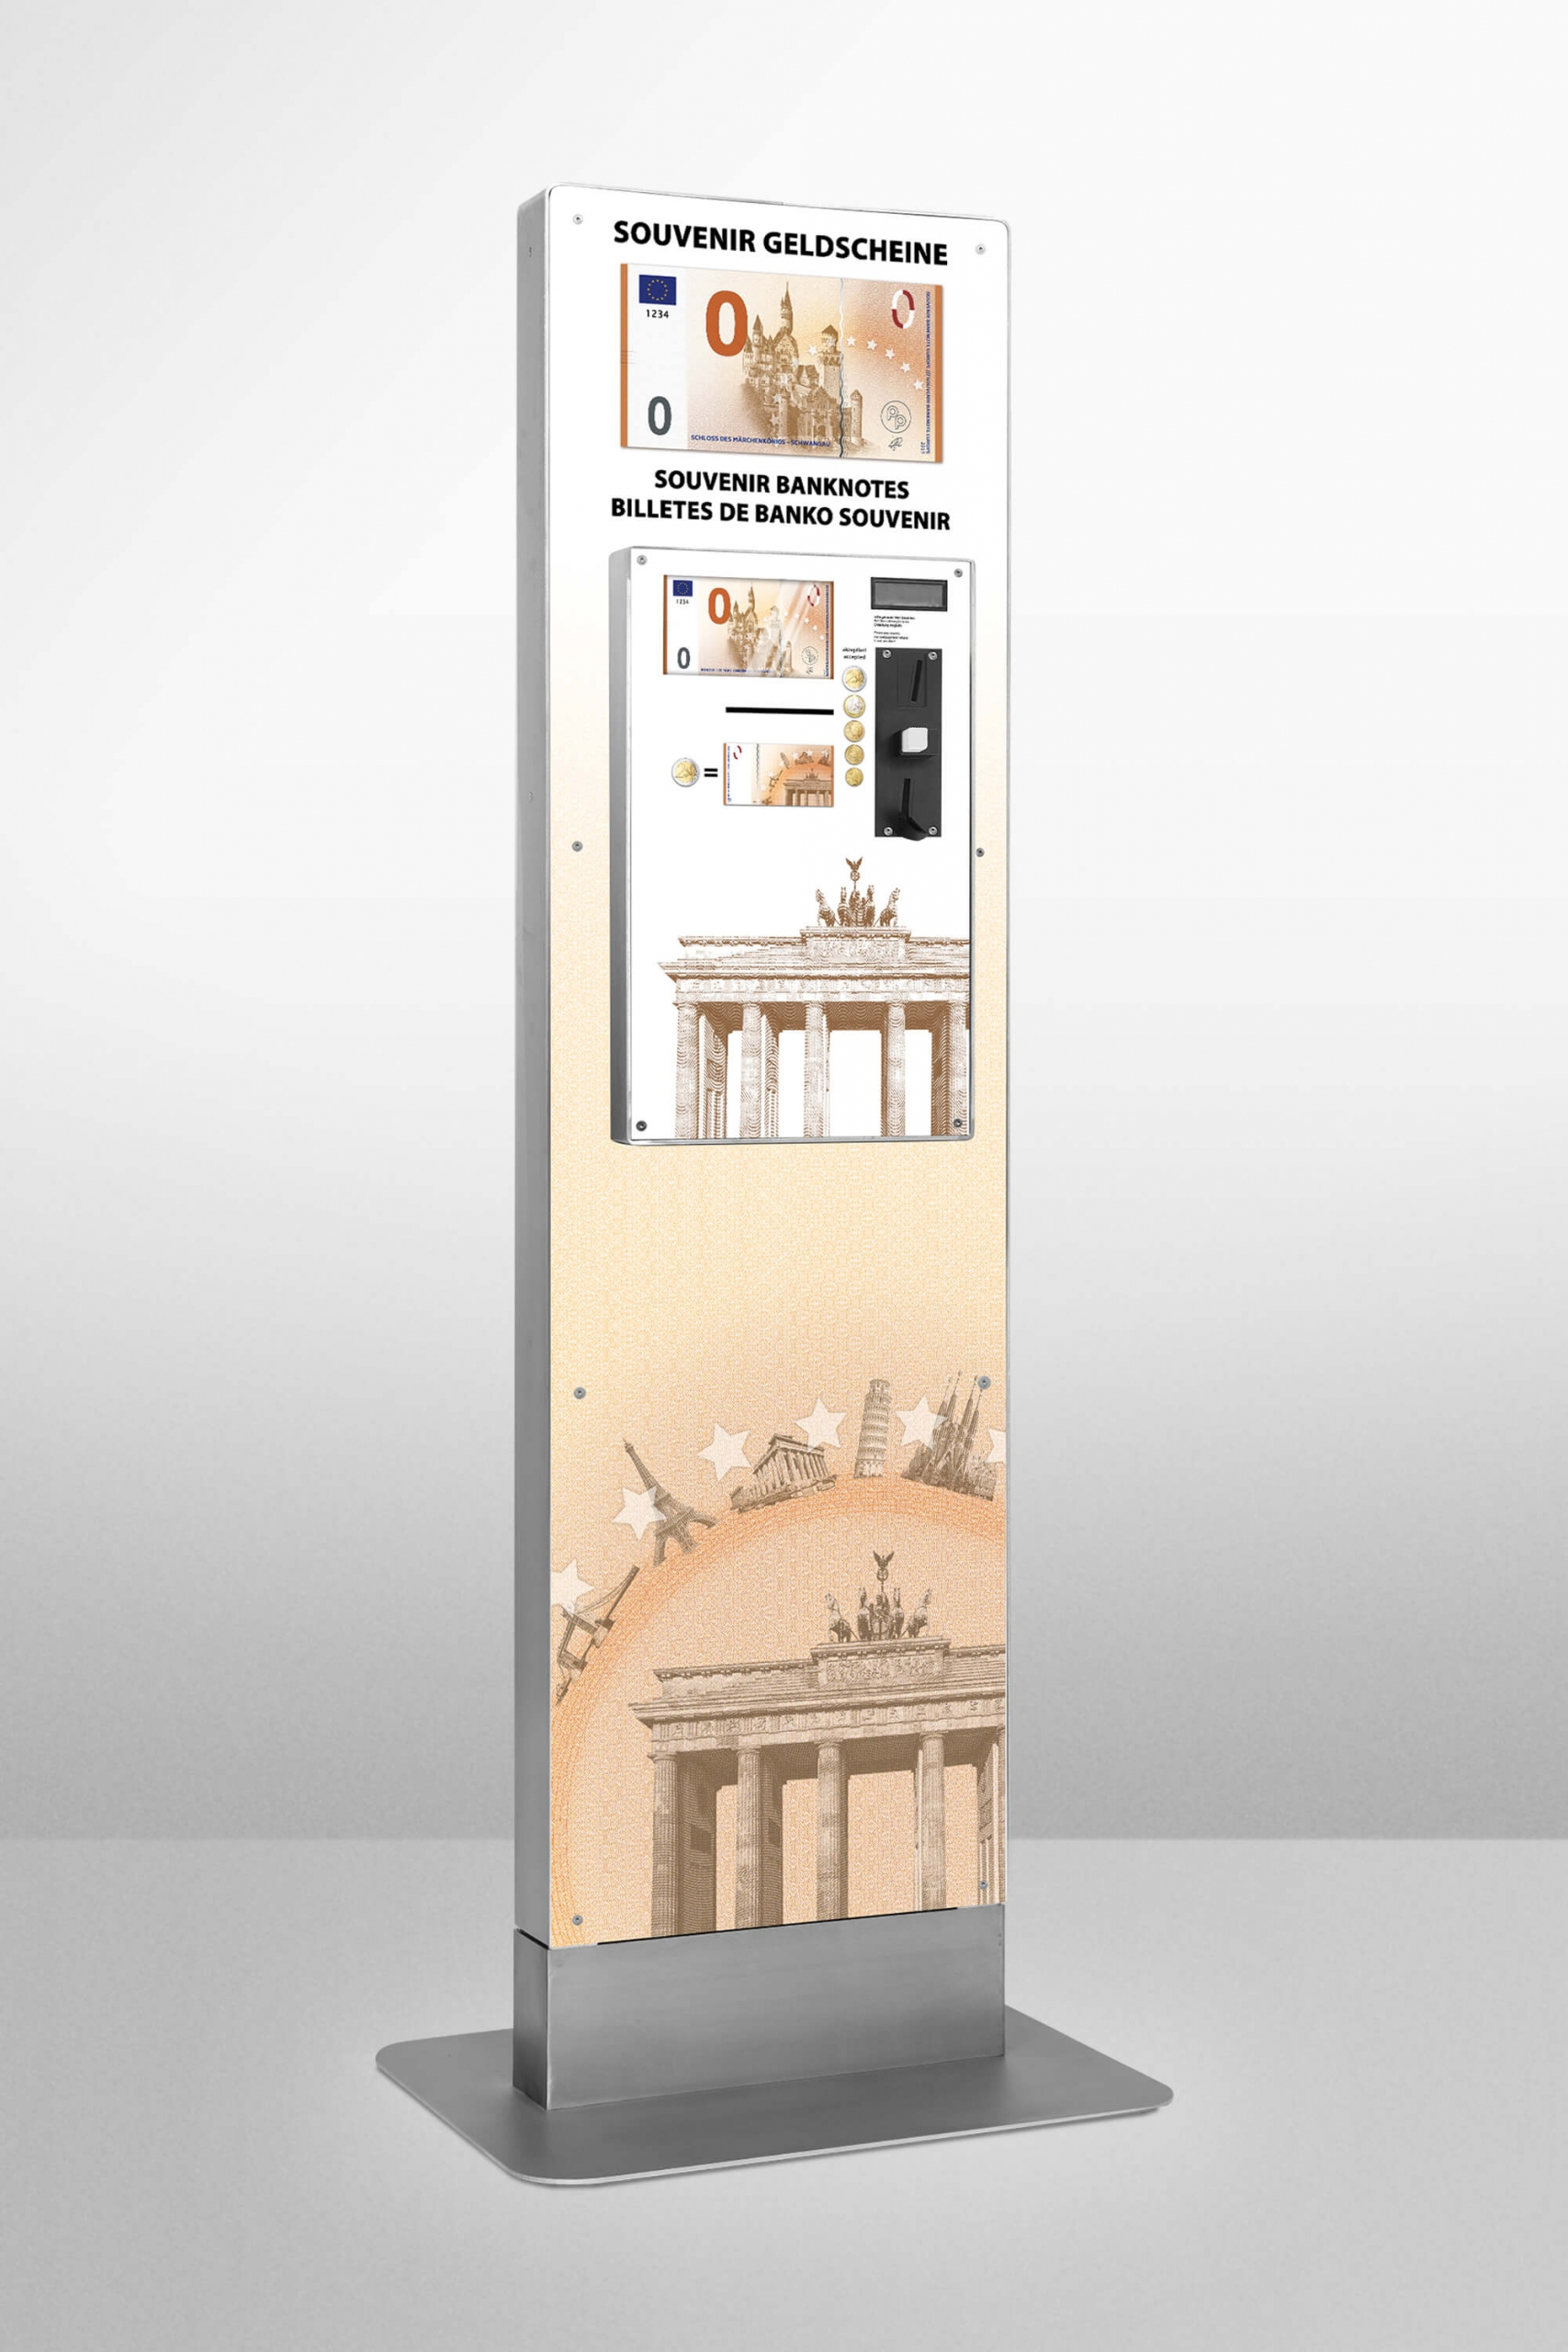 Souvenir banknote dispenser by Penny Press Europe